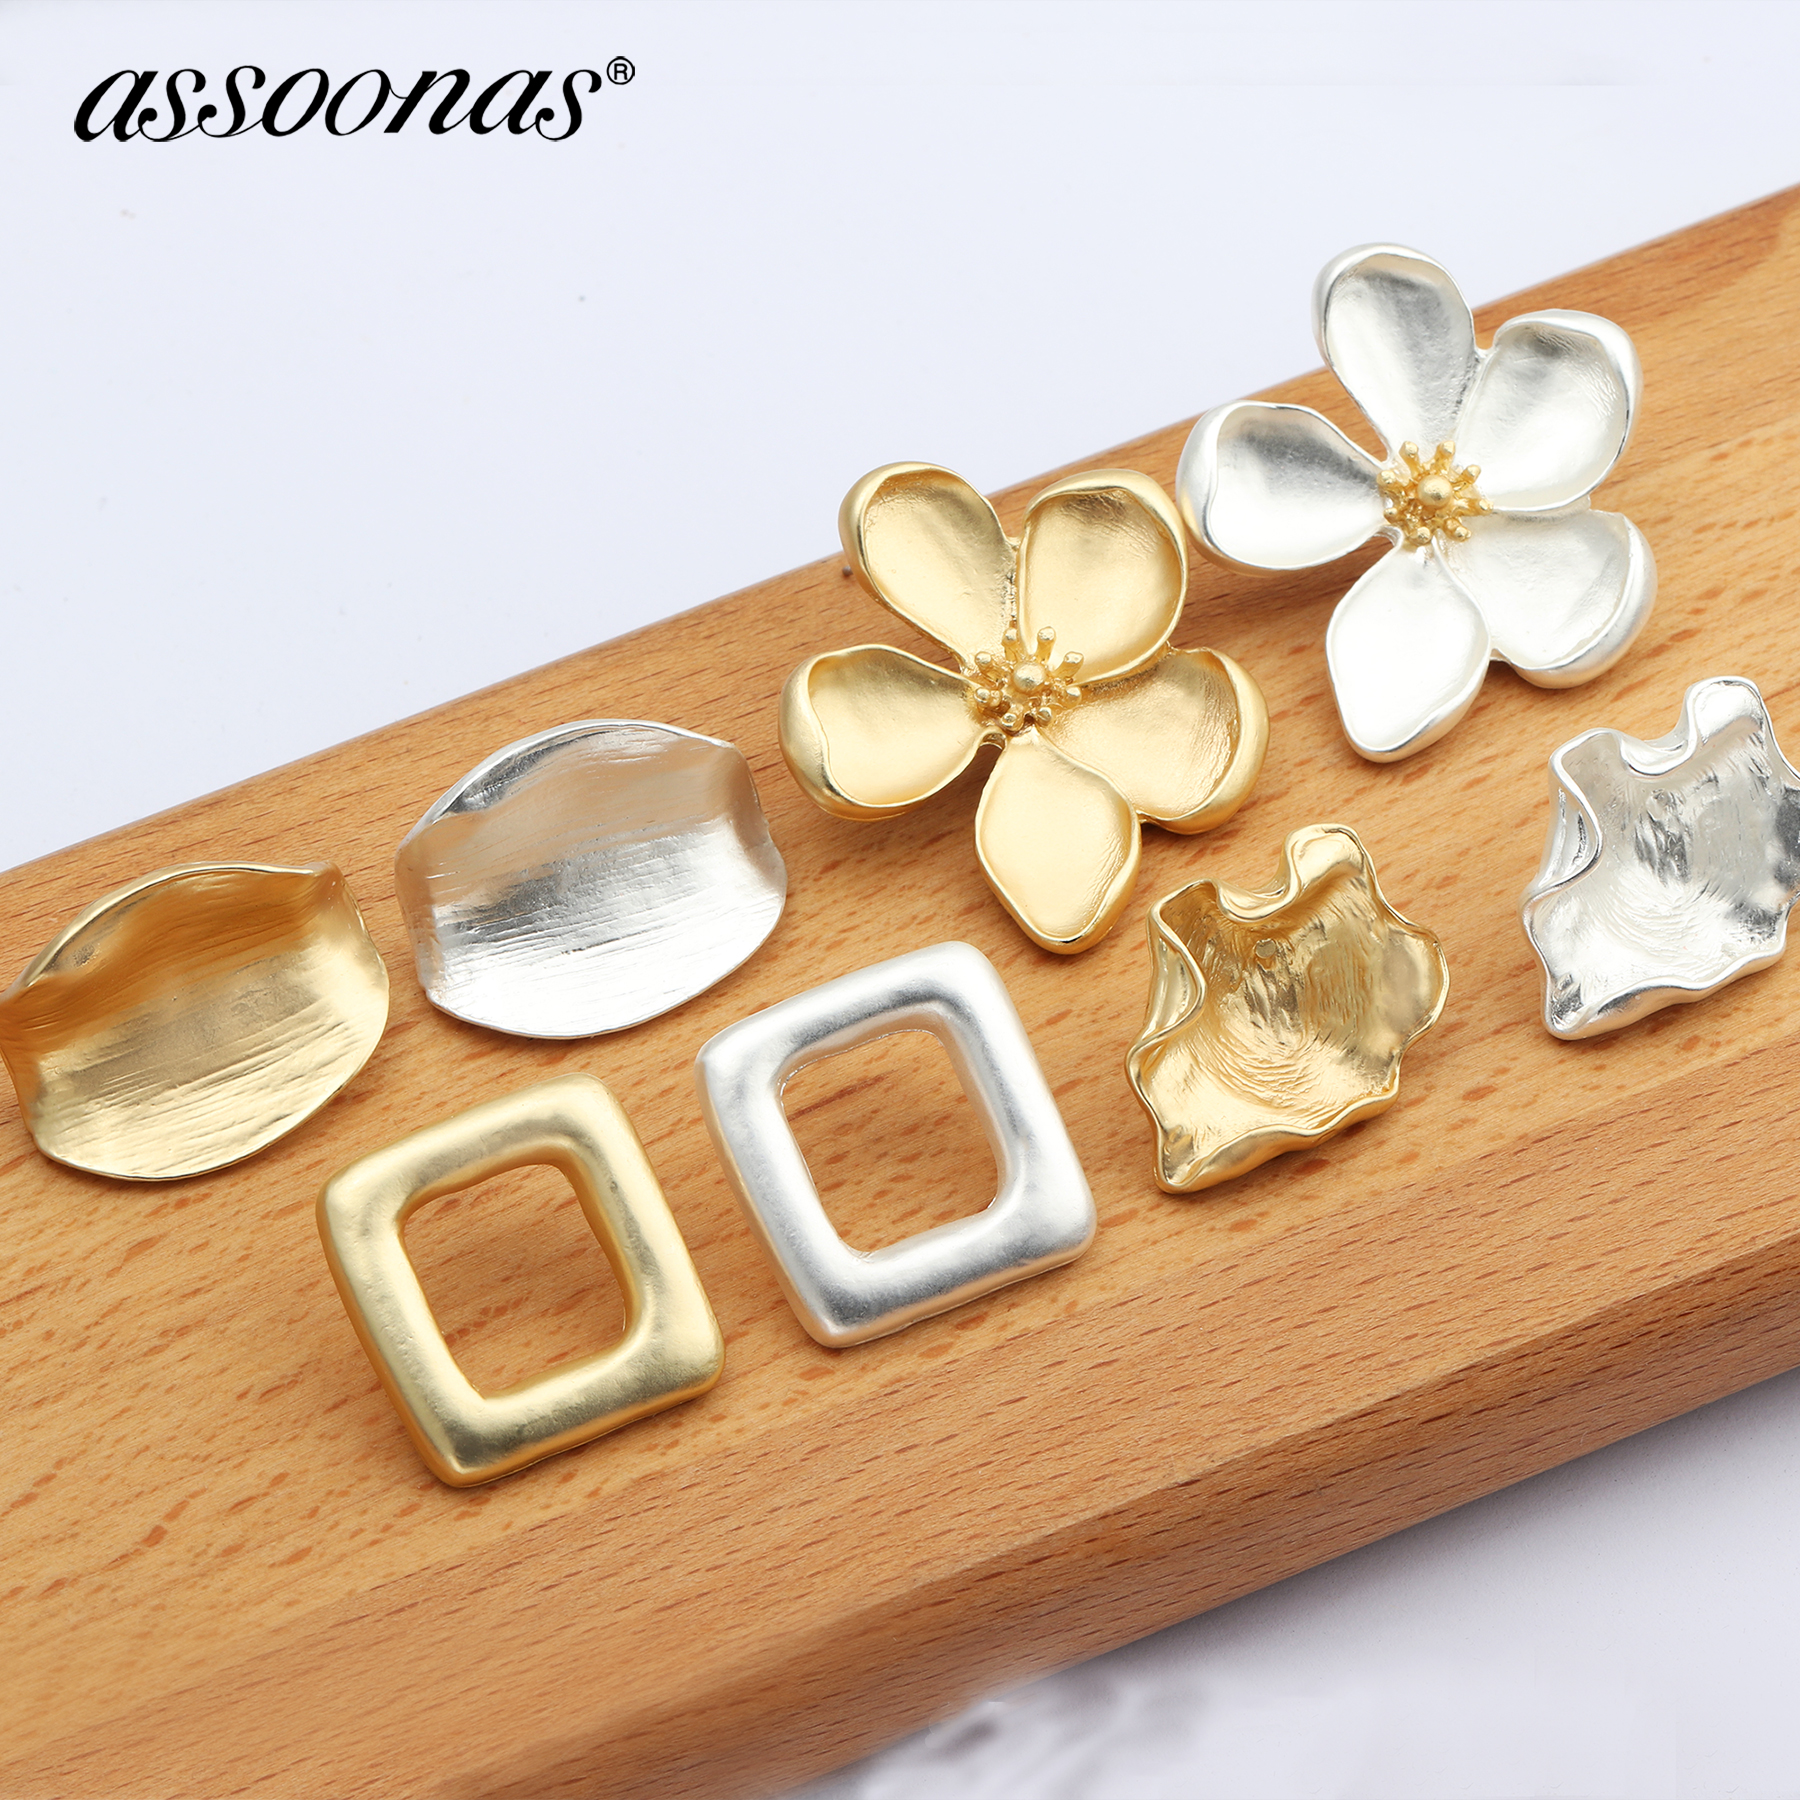 Assoonas Earrings Stud Pendant Jewelry-Accessories Charm Hand-Made M596 10pcs/Lot